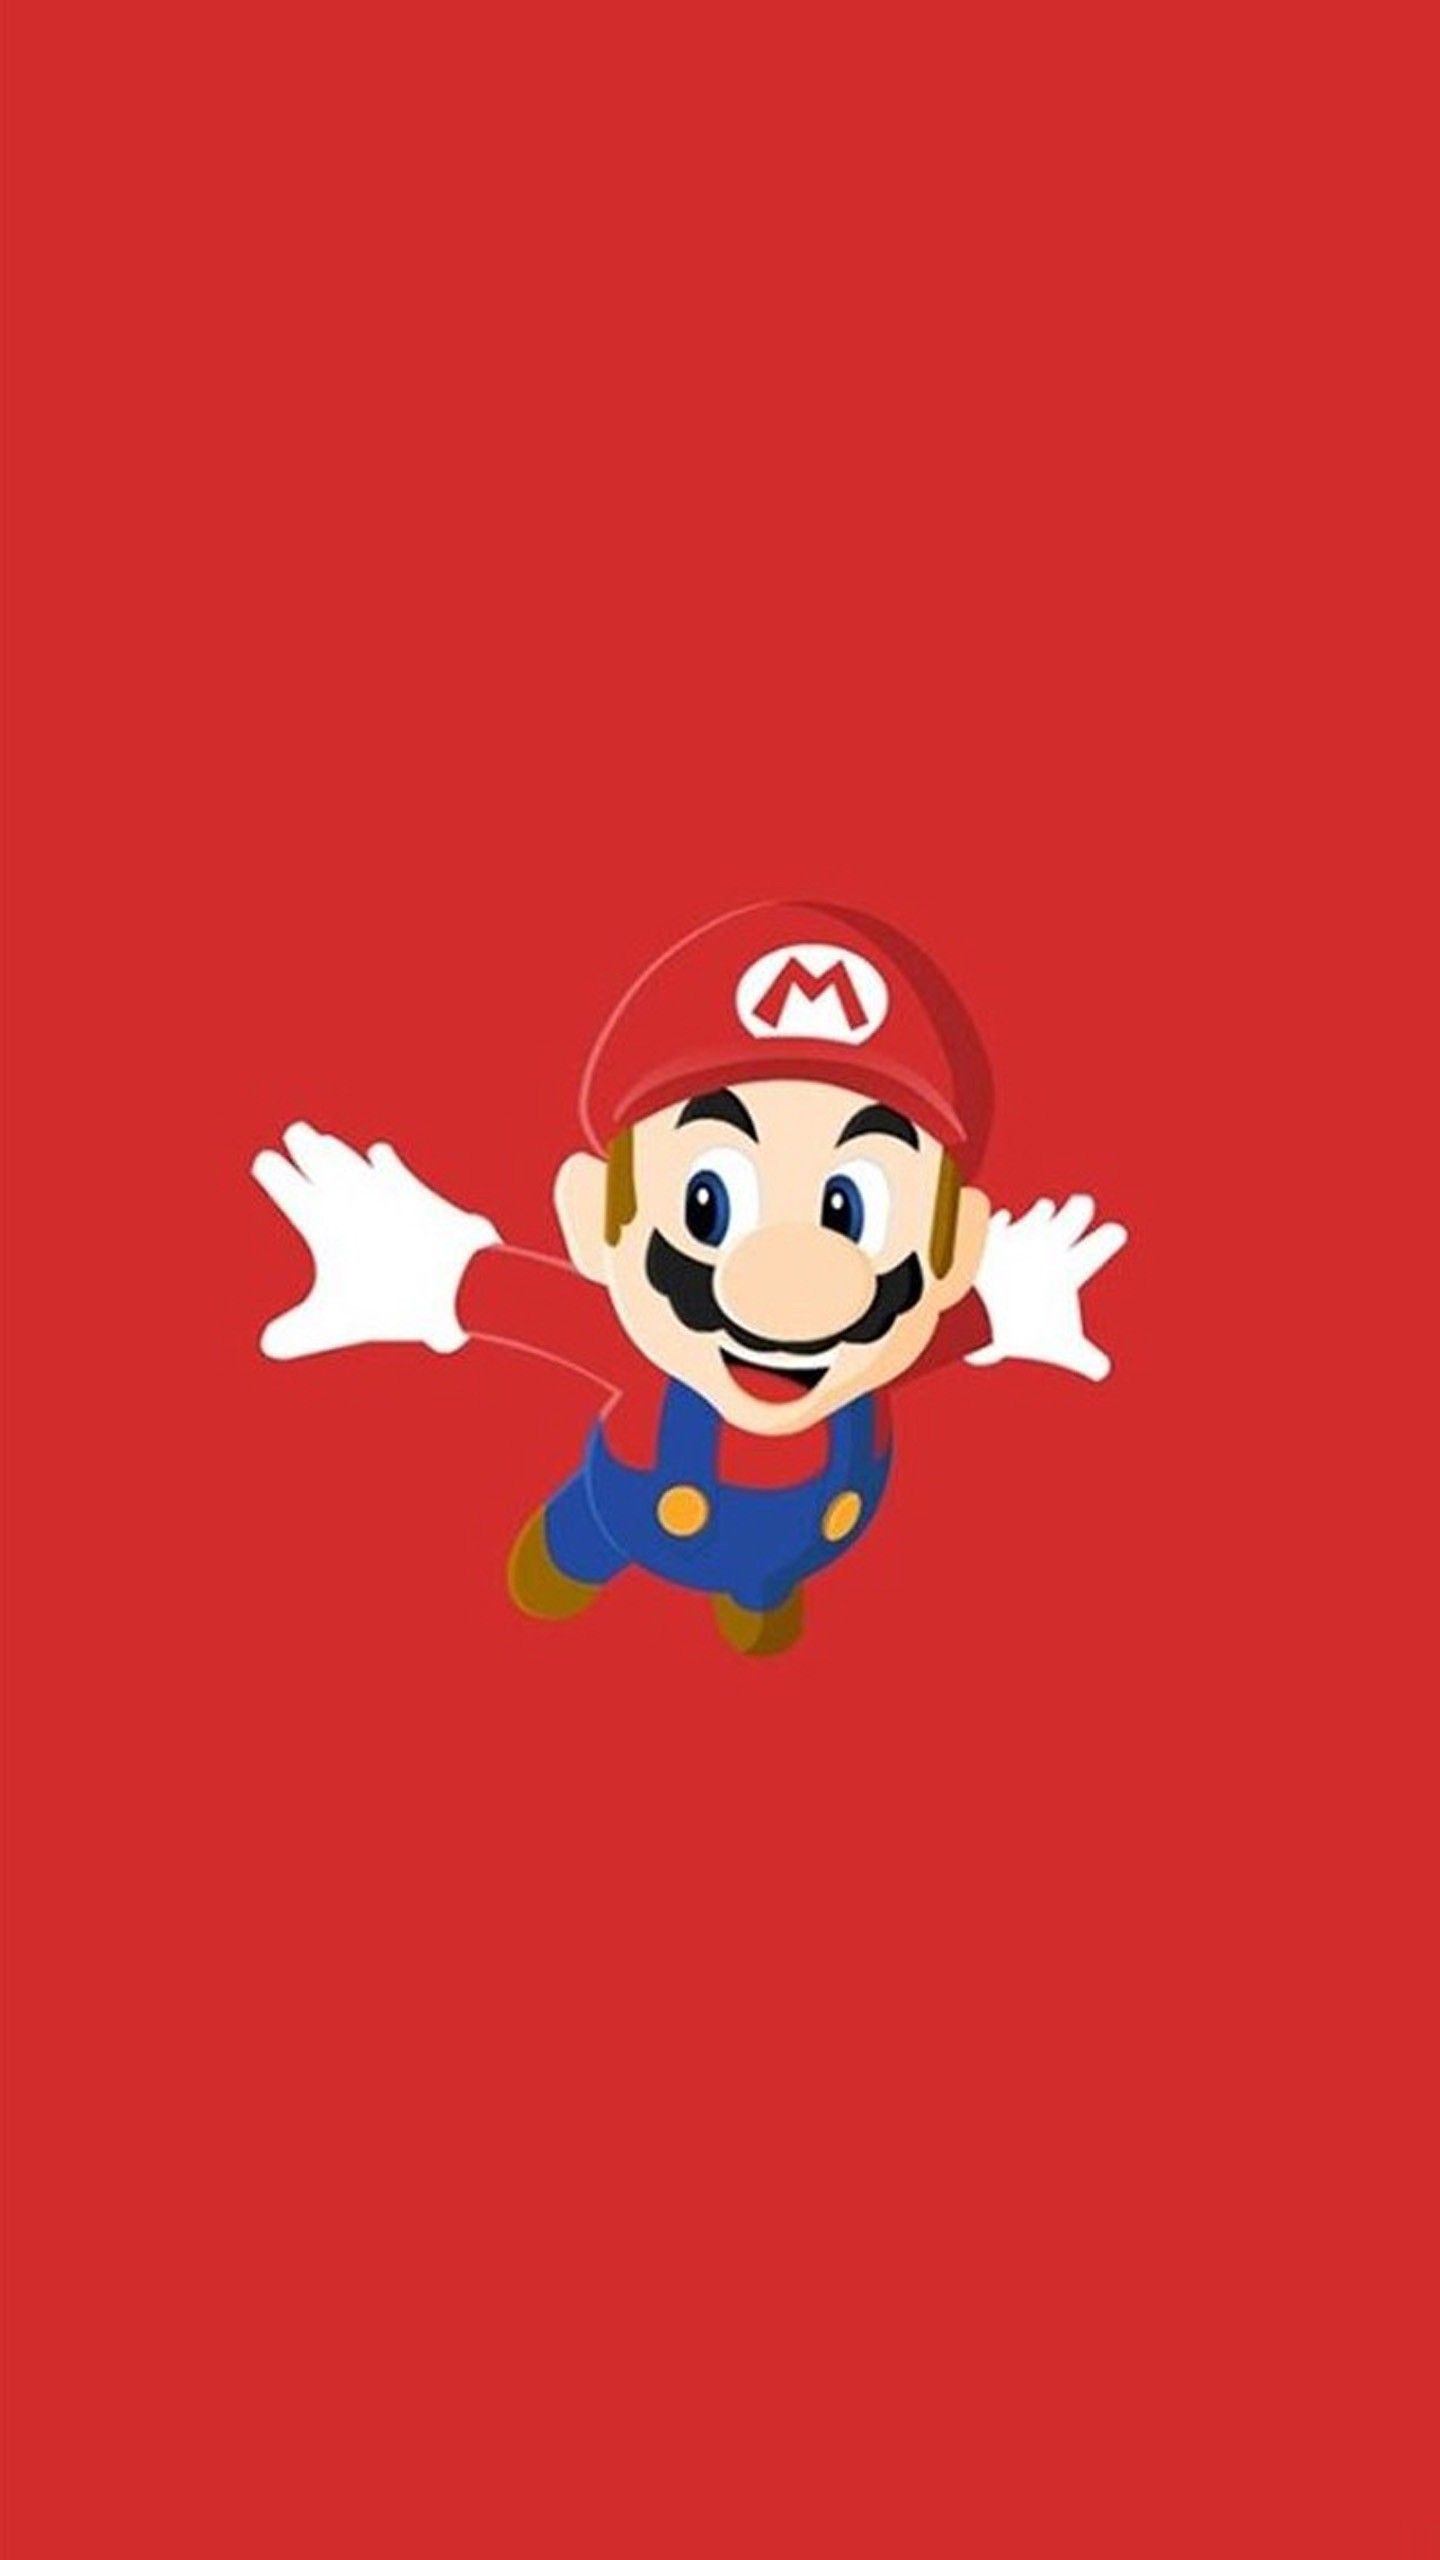 75 Mario Iphone Wallpapers On Wallpaperplay Super Mario Mario Bros Super Mario Bros